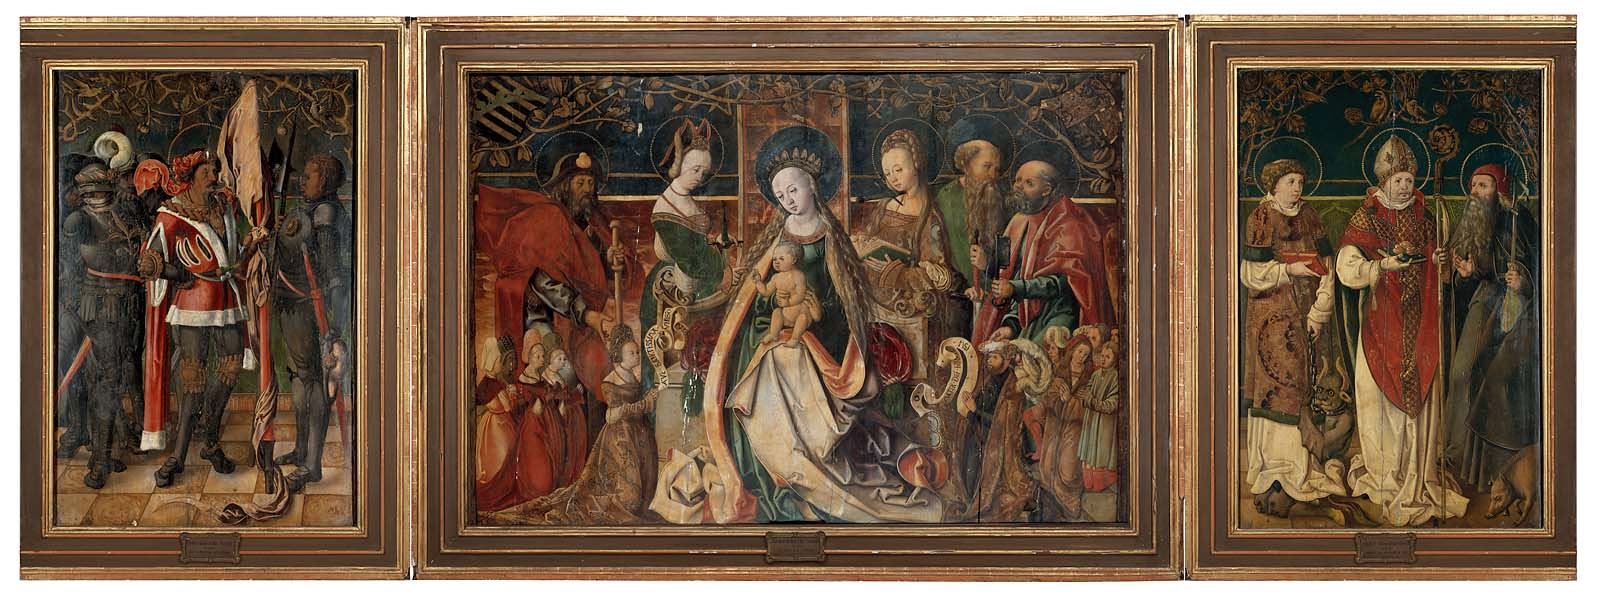 The Calenberg Alterpiece